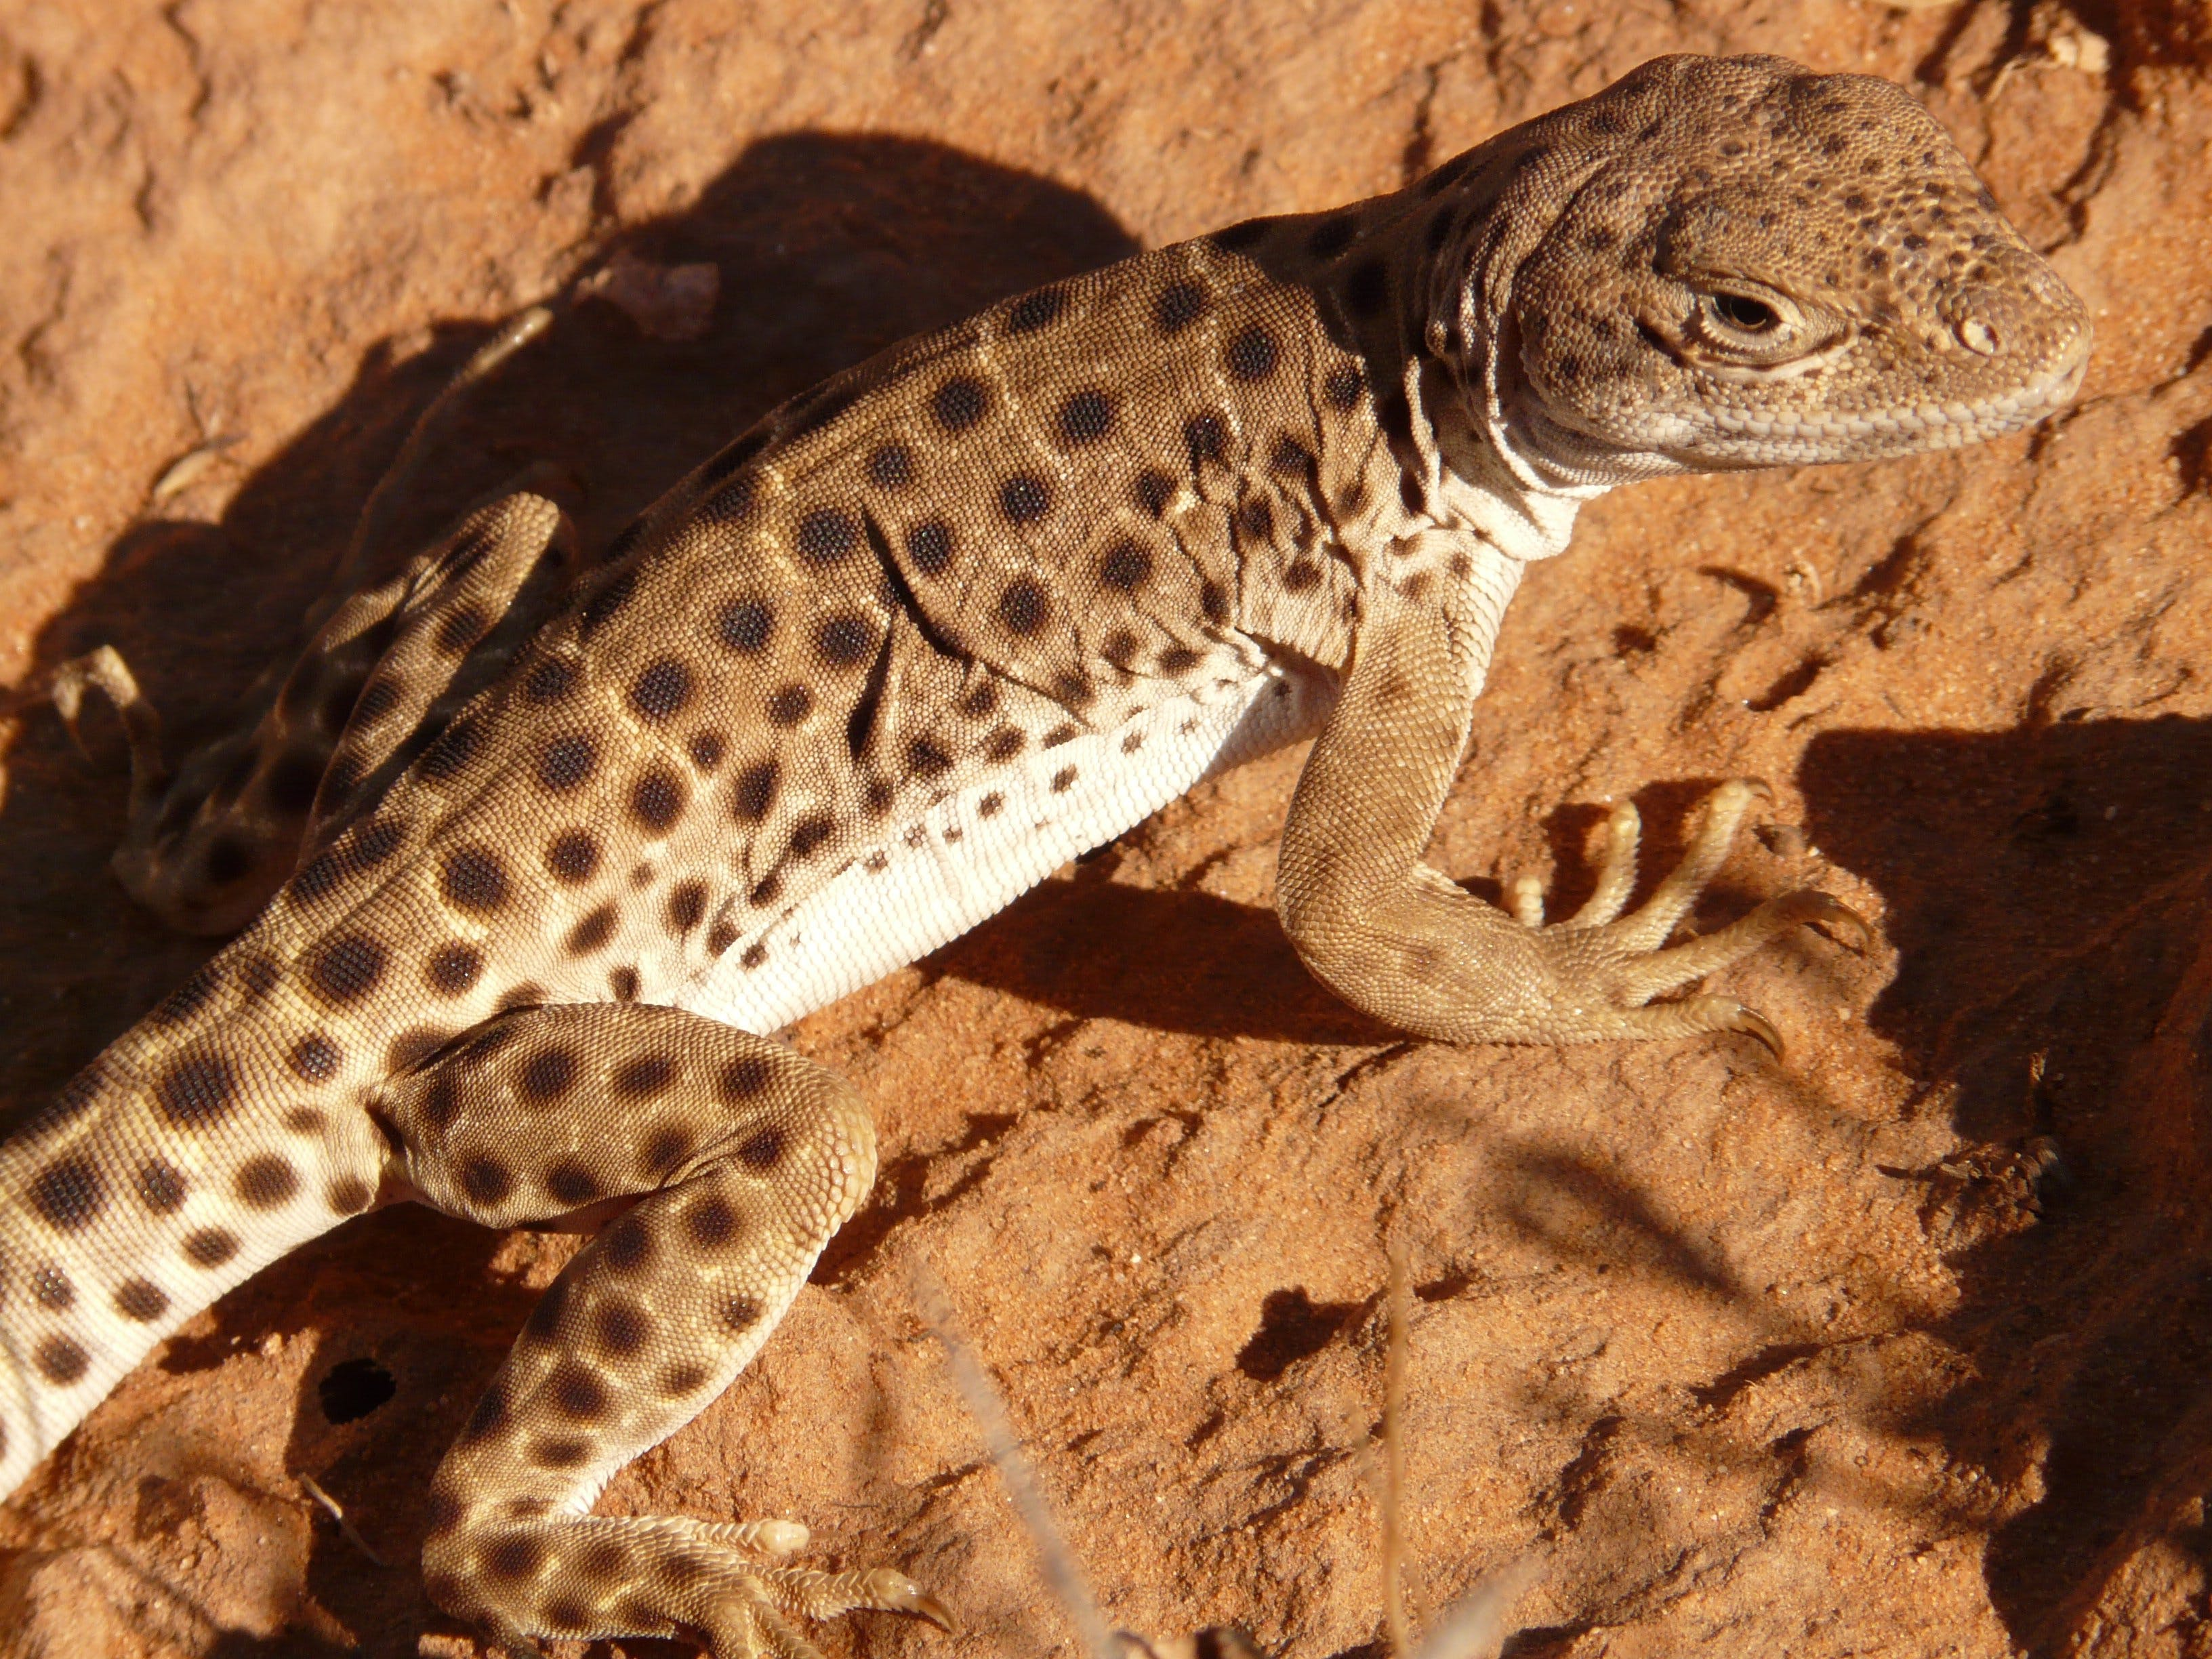 Brown and White Lizard Standing on Brown Surface